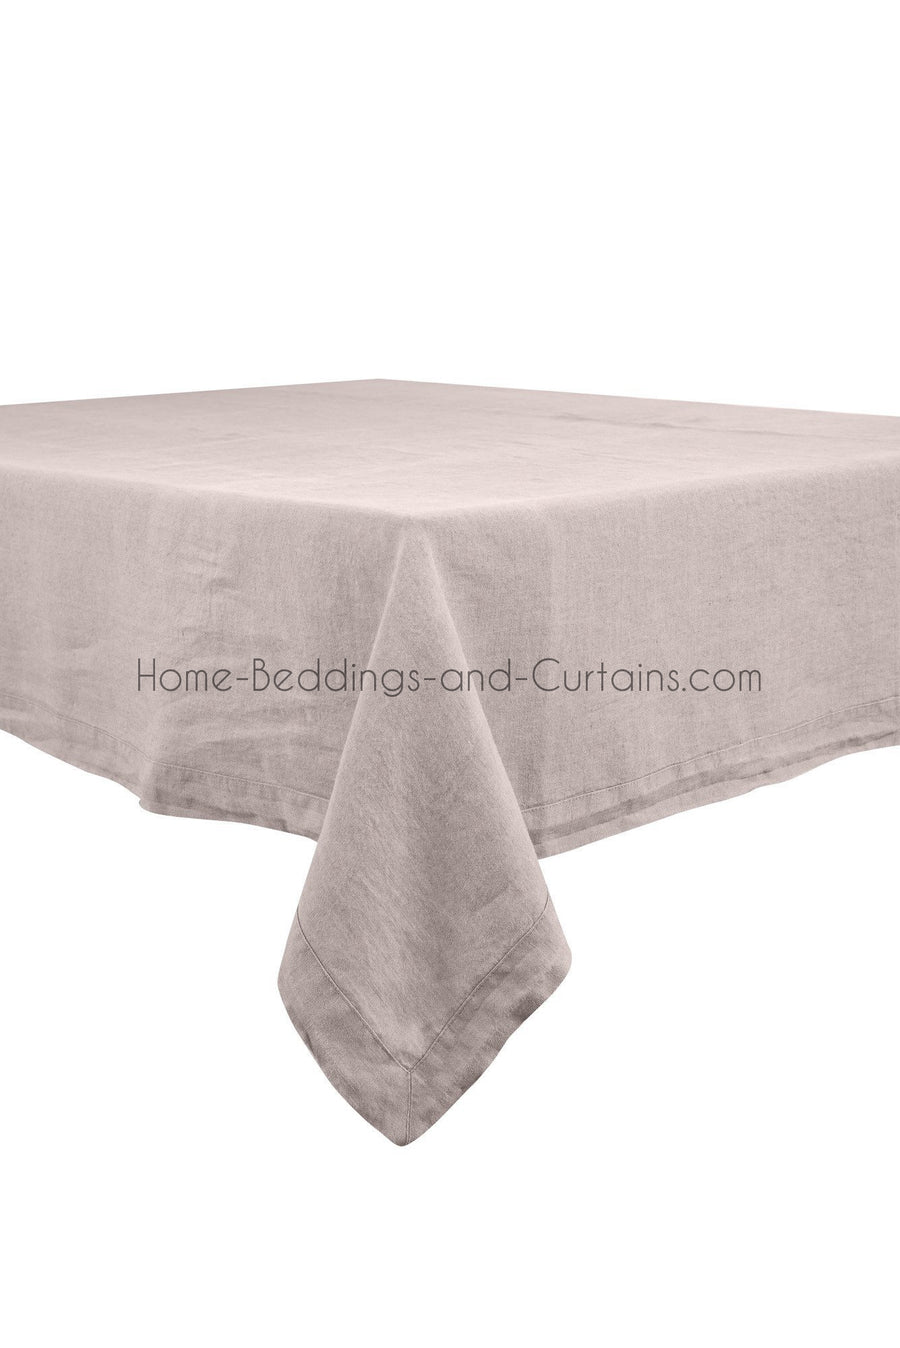 Harmony - Nappe en lin lavé Nais rose Poudre - Home Beddings and Curtains